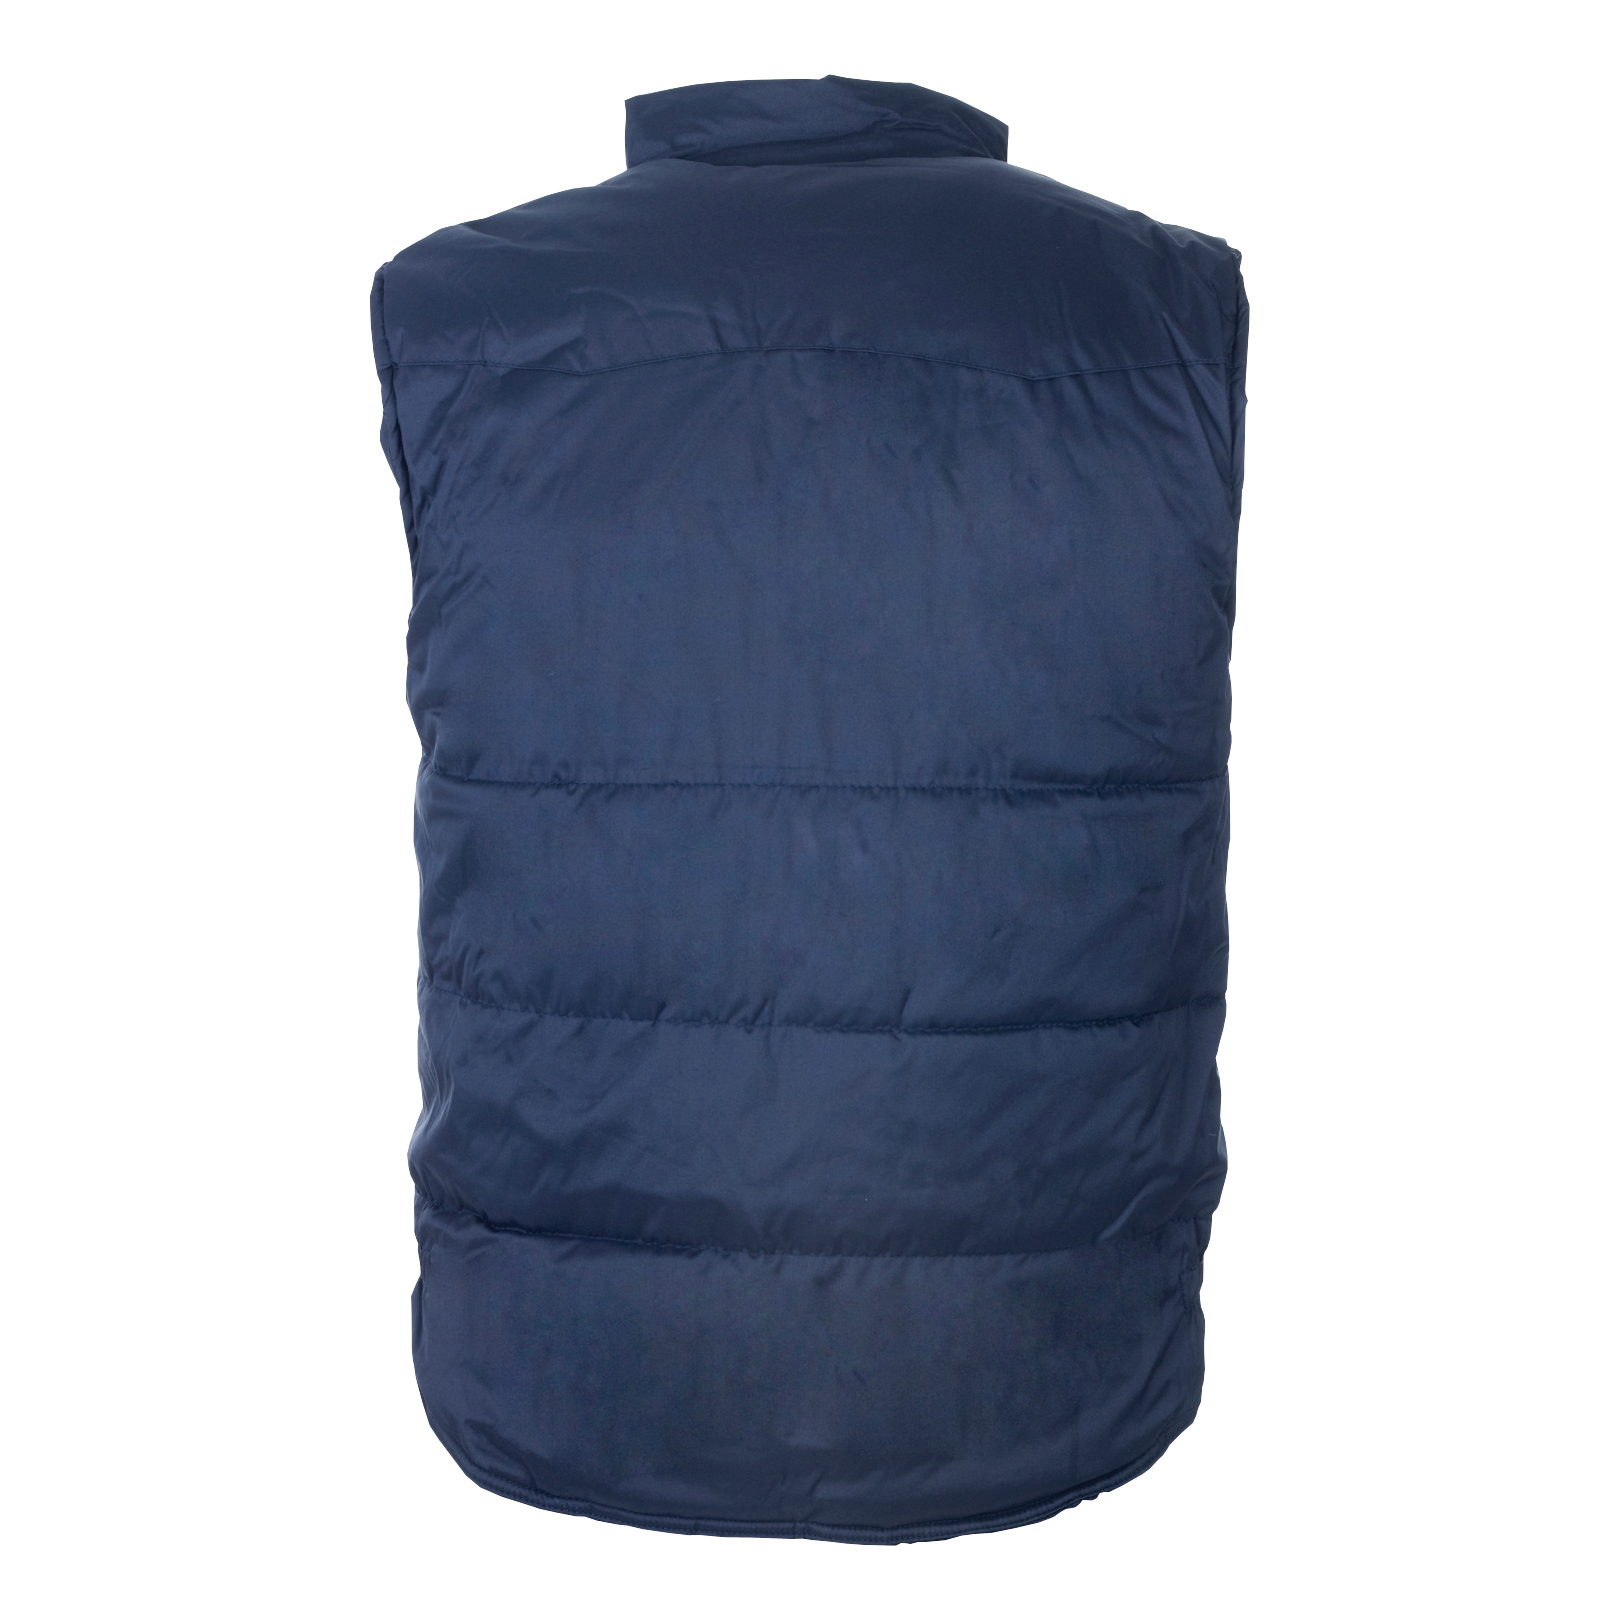 Body Warmer Polyester with Padding & Multi Pockets Medium Navy Ref HBNM *Approx 3 Day Leadtime*